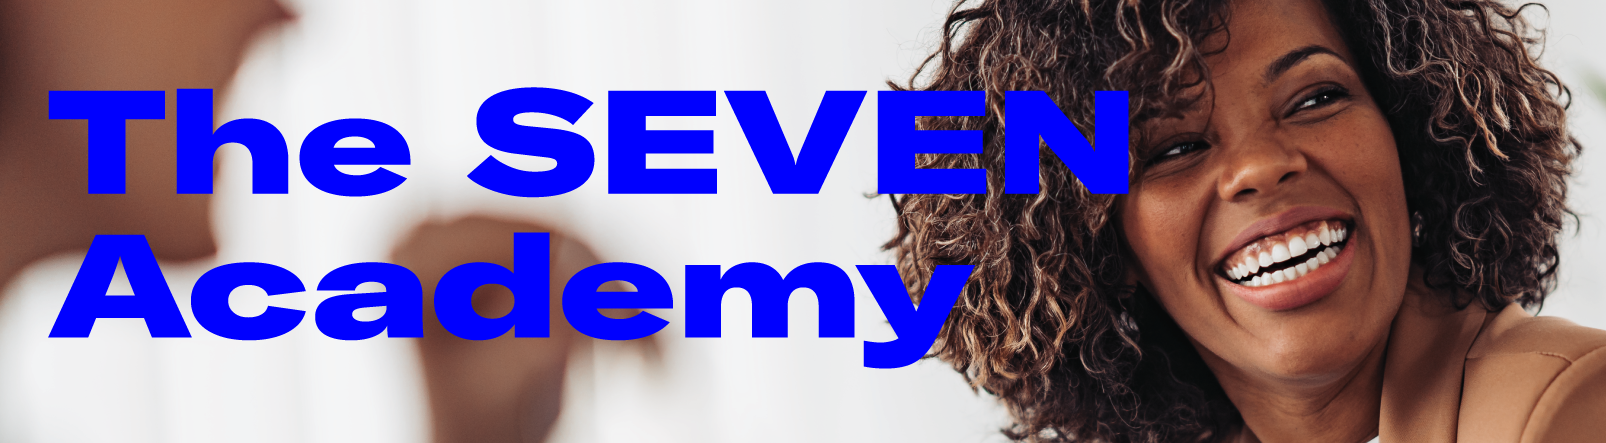 The-SEVEN-ACADEMY-3